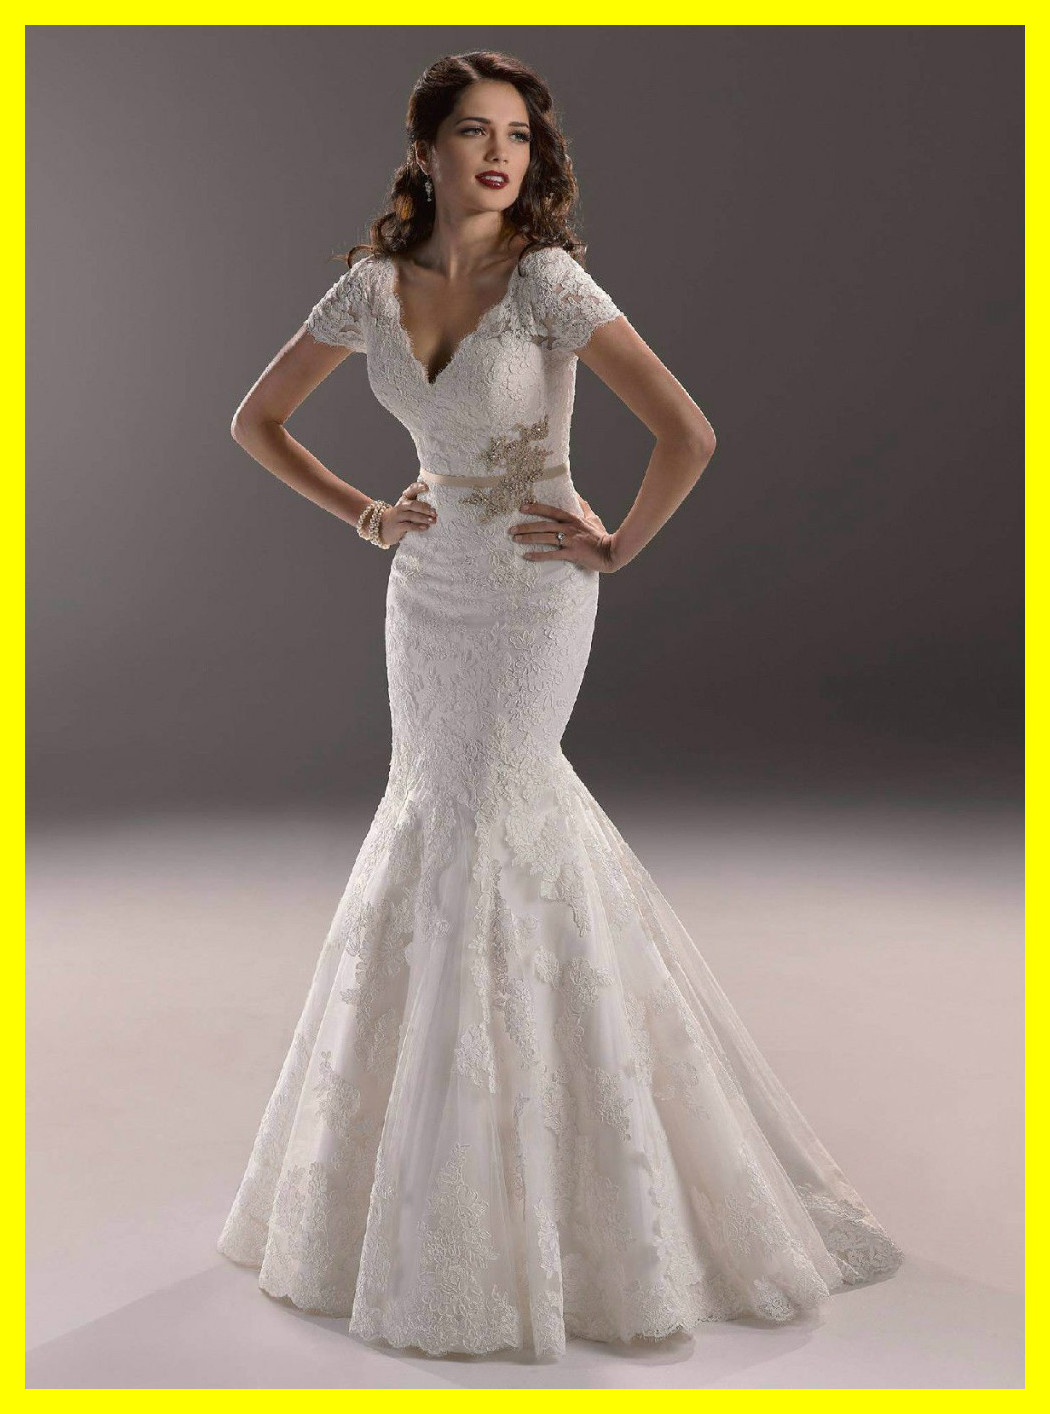 Rockabilly Wedding Dress Black And White Plus Size Dresses Under Guest A Mermaid Floorlength Sweepbrush Train La 2015 On Sale: Plus Size Black Rockabilly Wedding Dresses At Reisefeber.org